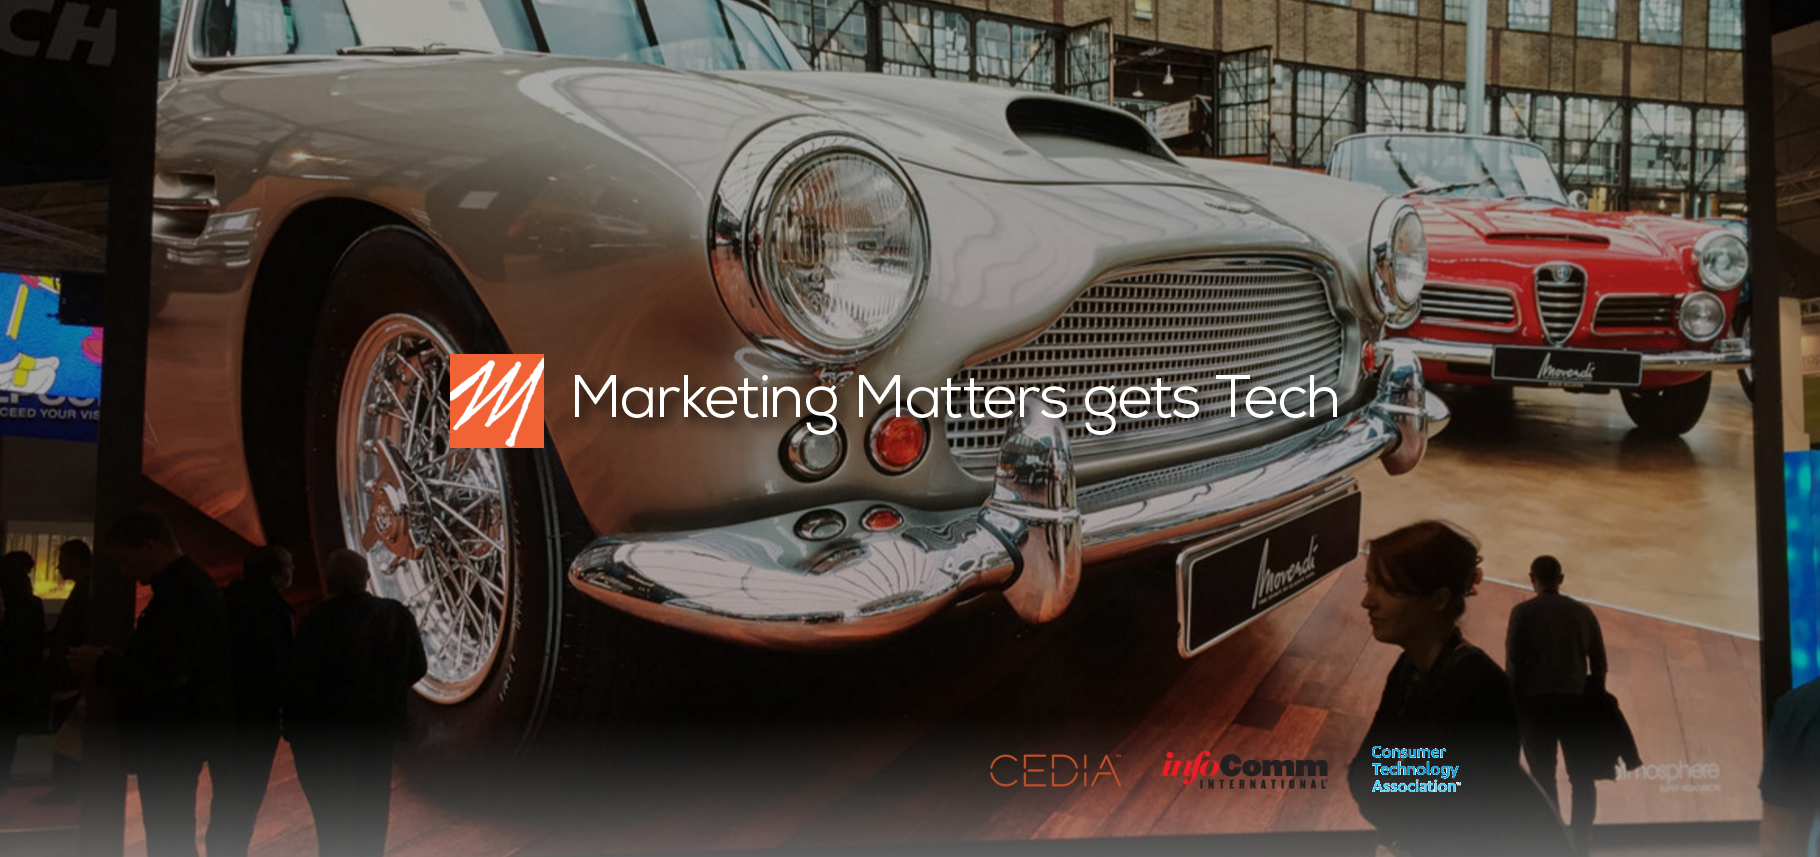 20 Days of Giveaways - Day 11: Marketing Matters